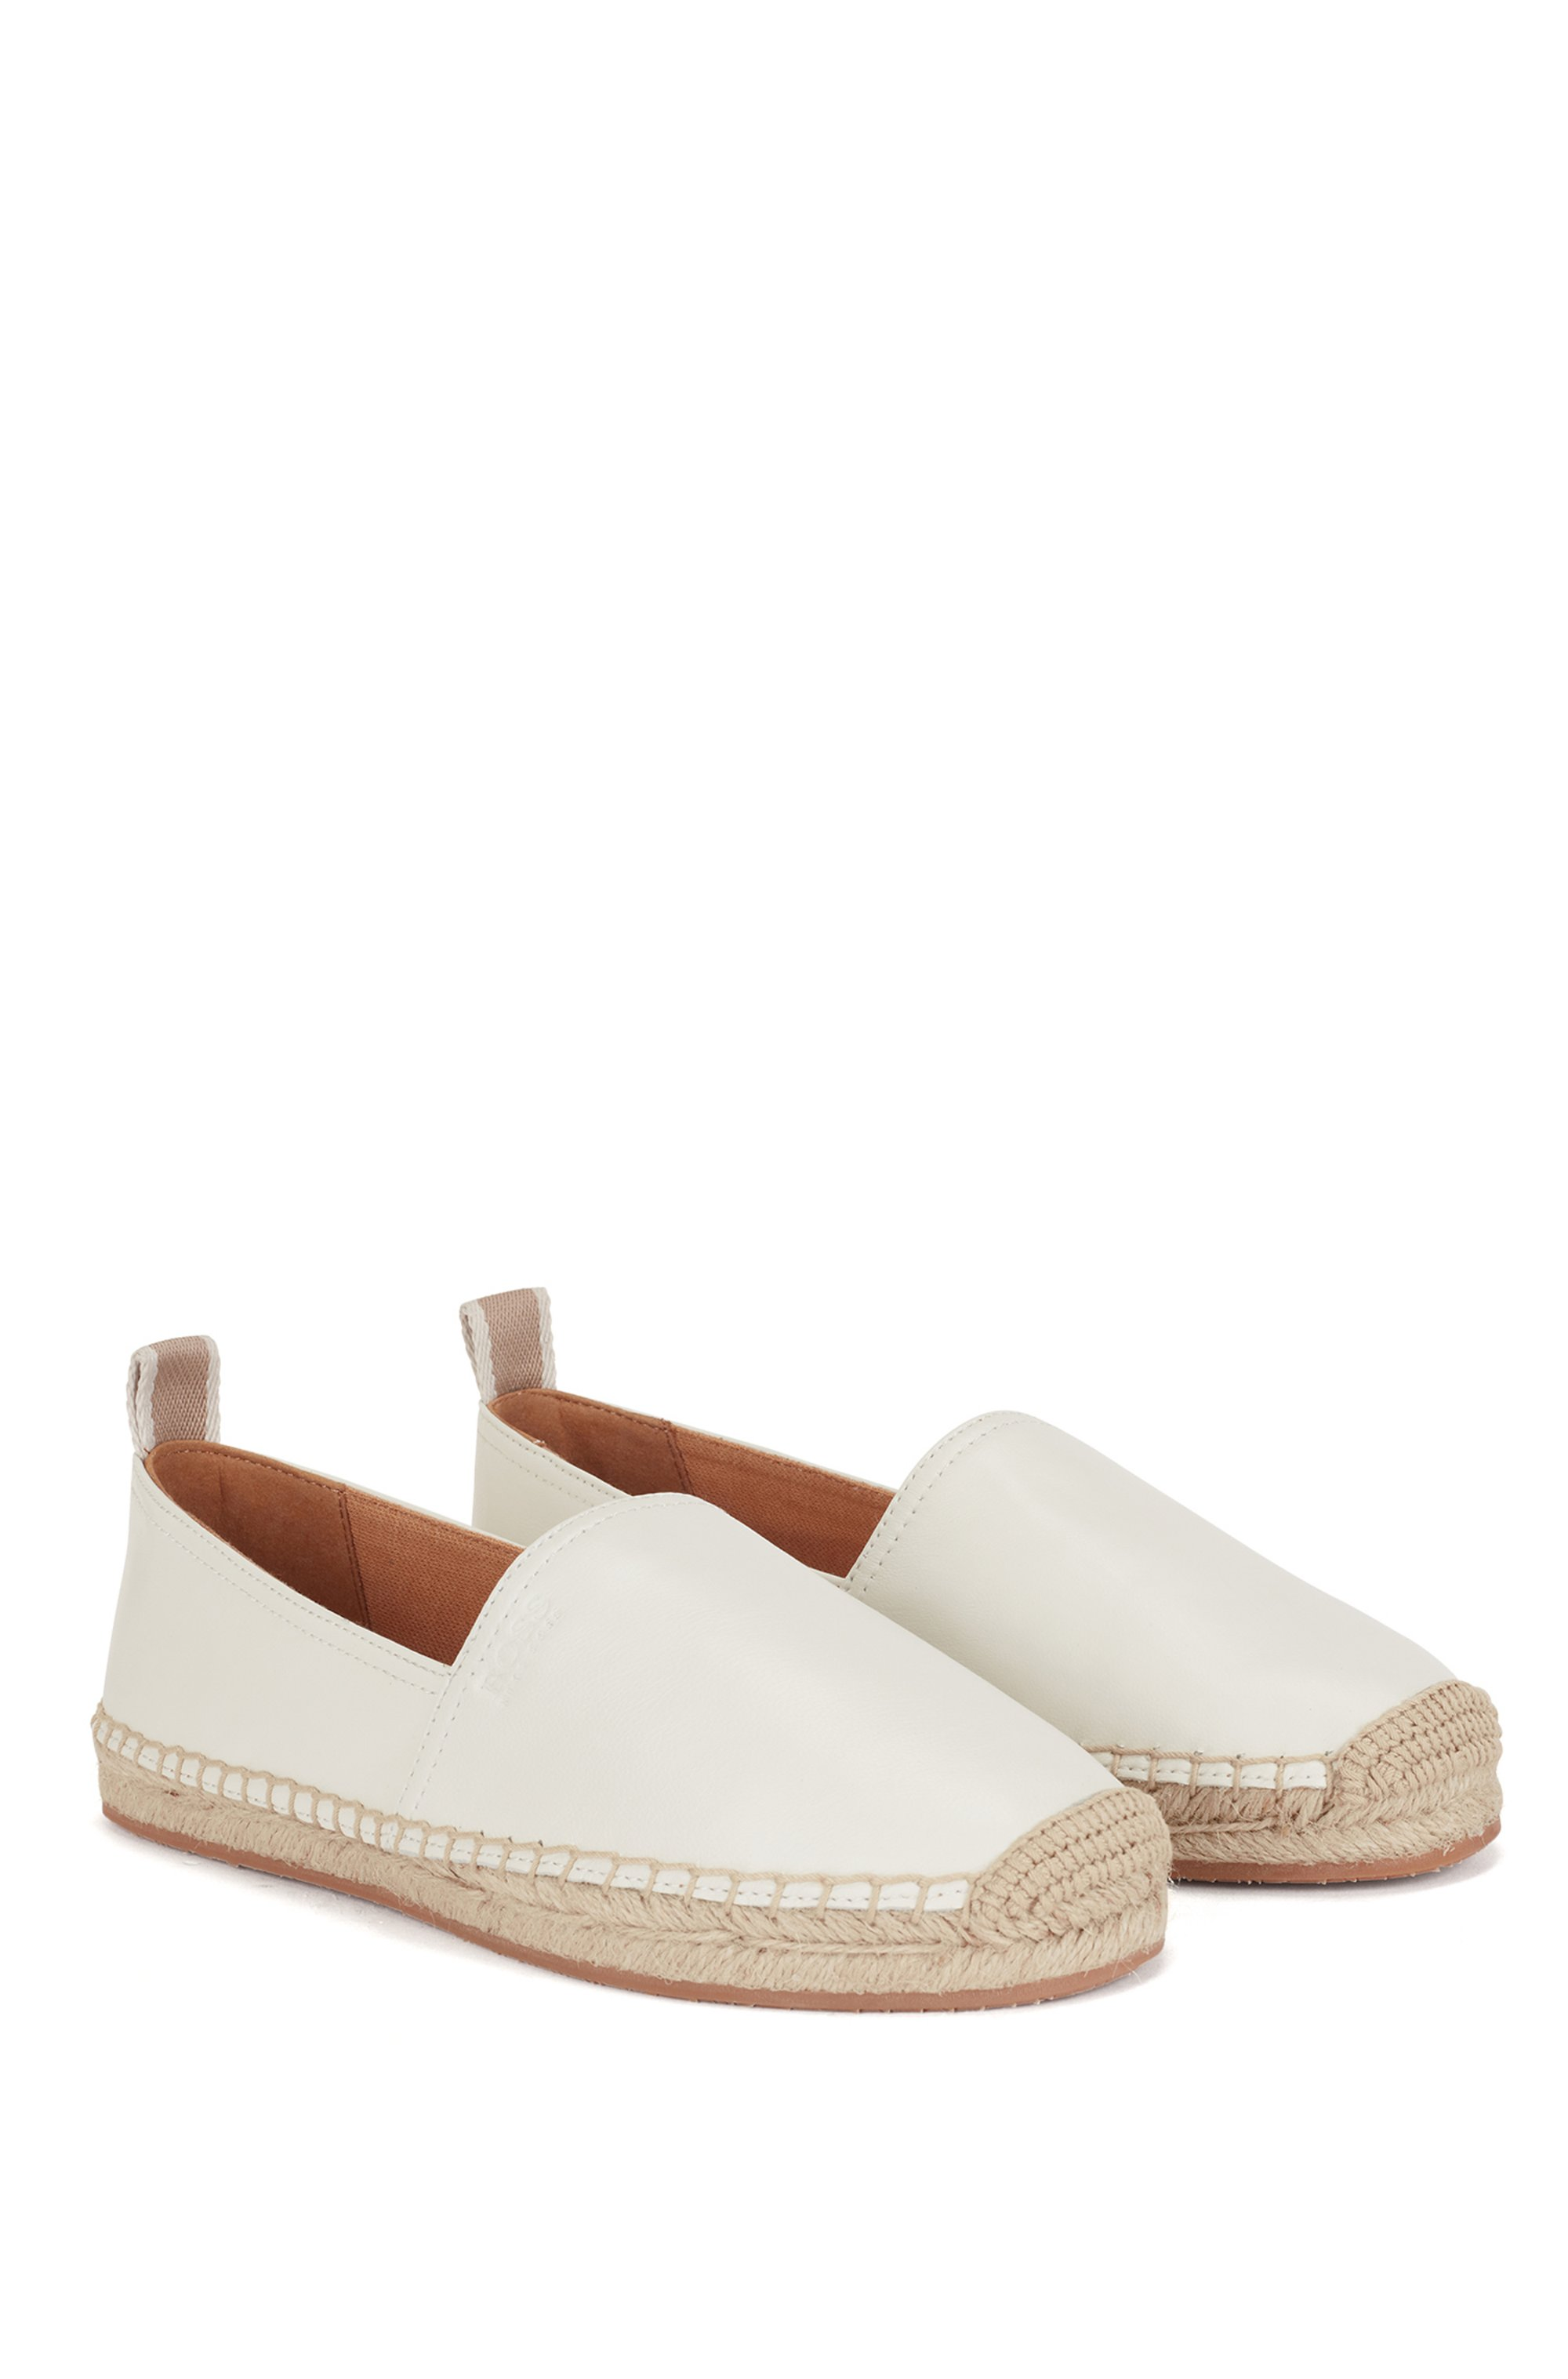 Espadrilles in nappa leather with embossed logo